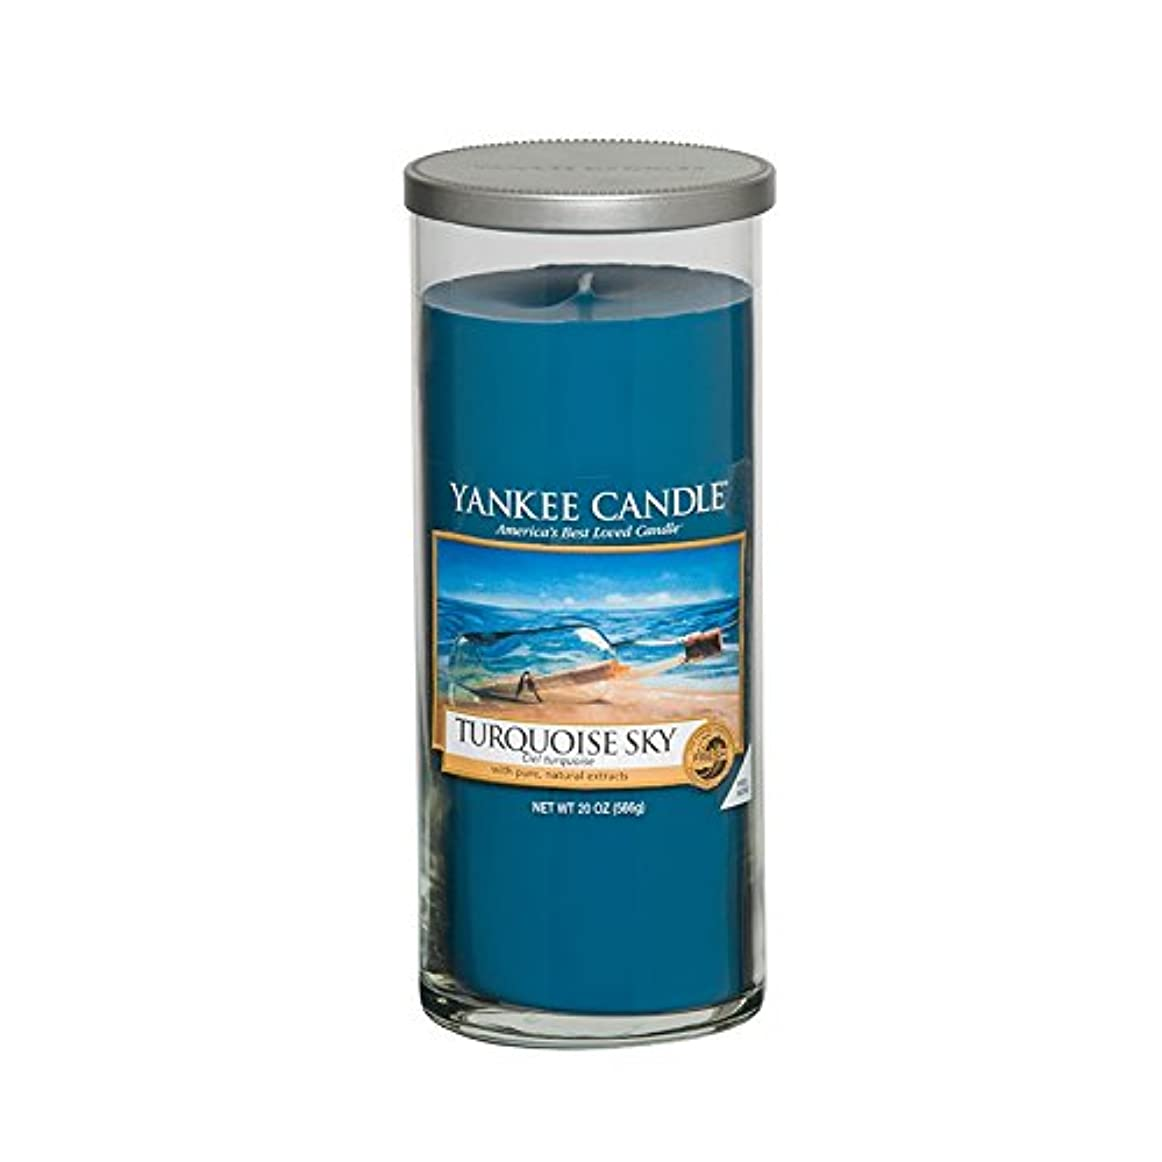 Yankee Candles Large Pillar Candle - Turquoise Sky (Pack of 6) - ヤンキーキャンドル大きな柱キャンドル - ターコイズの空 (x6) [並行輸入品]